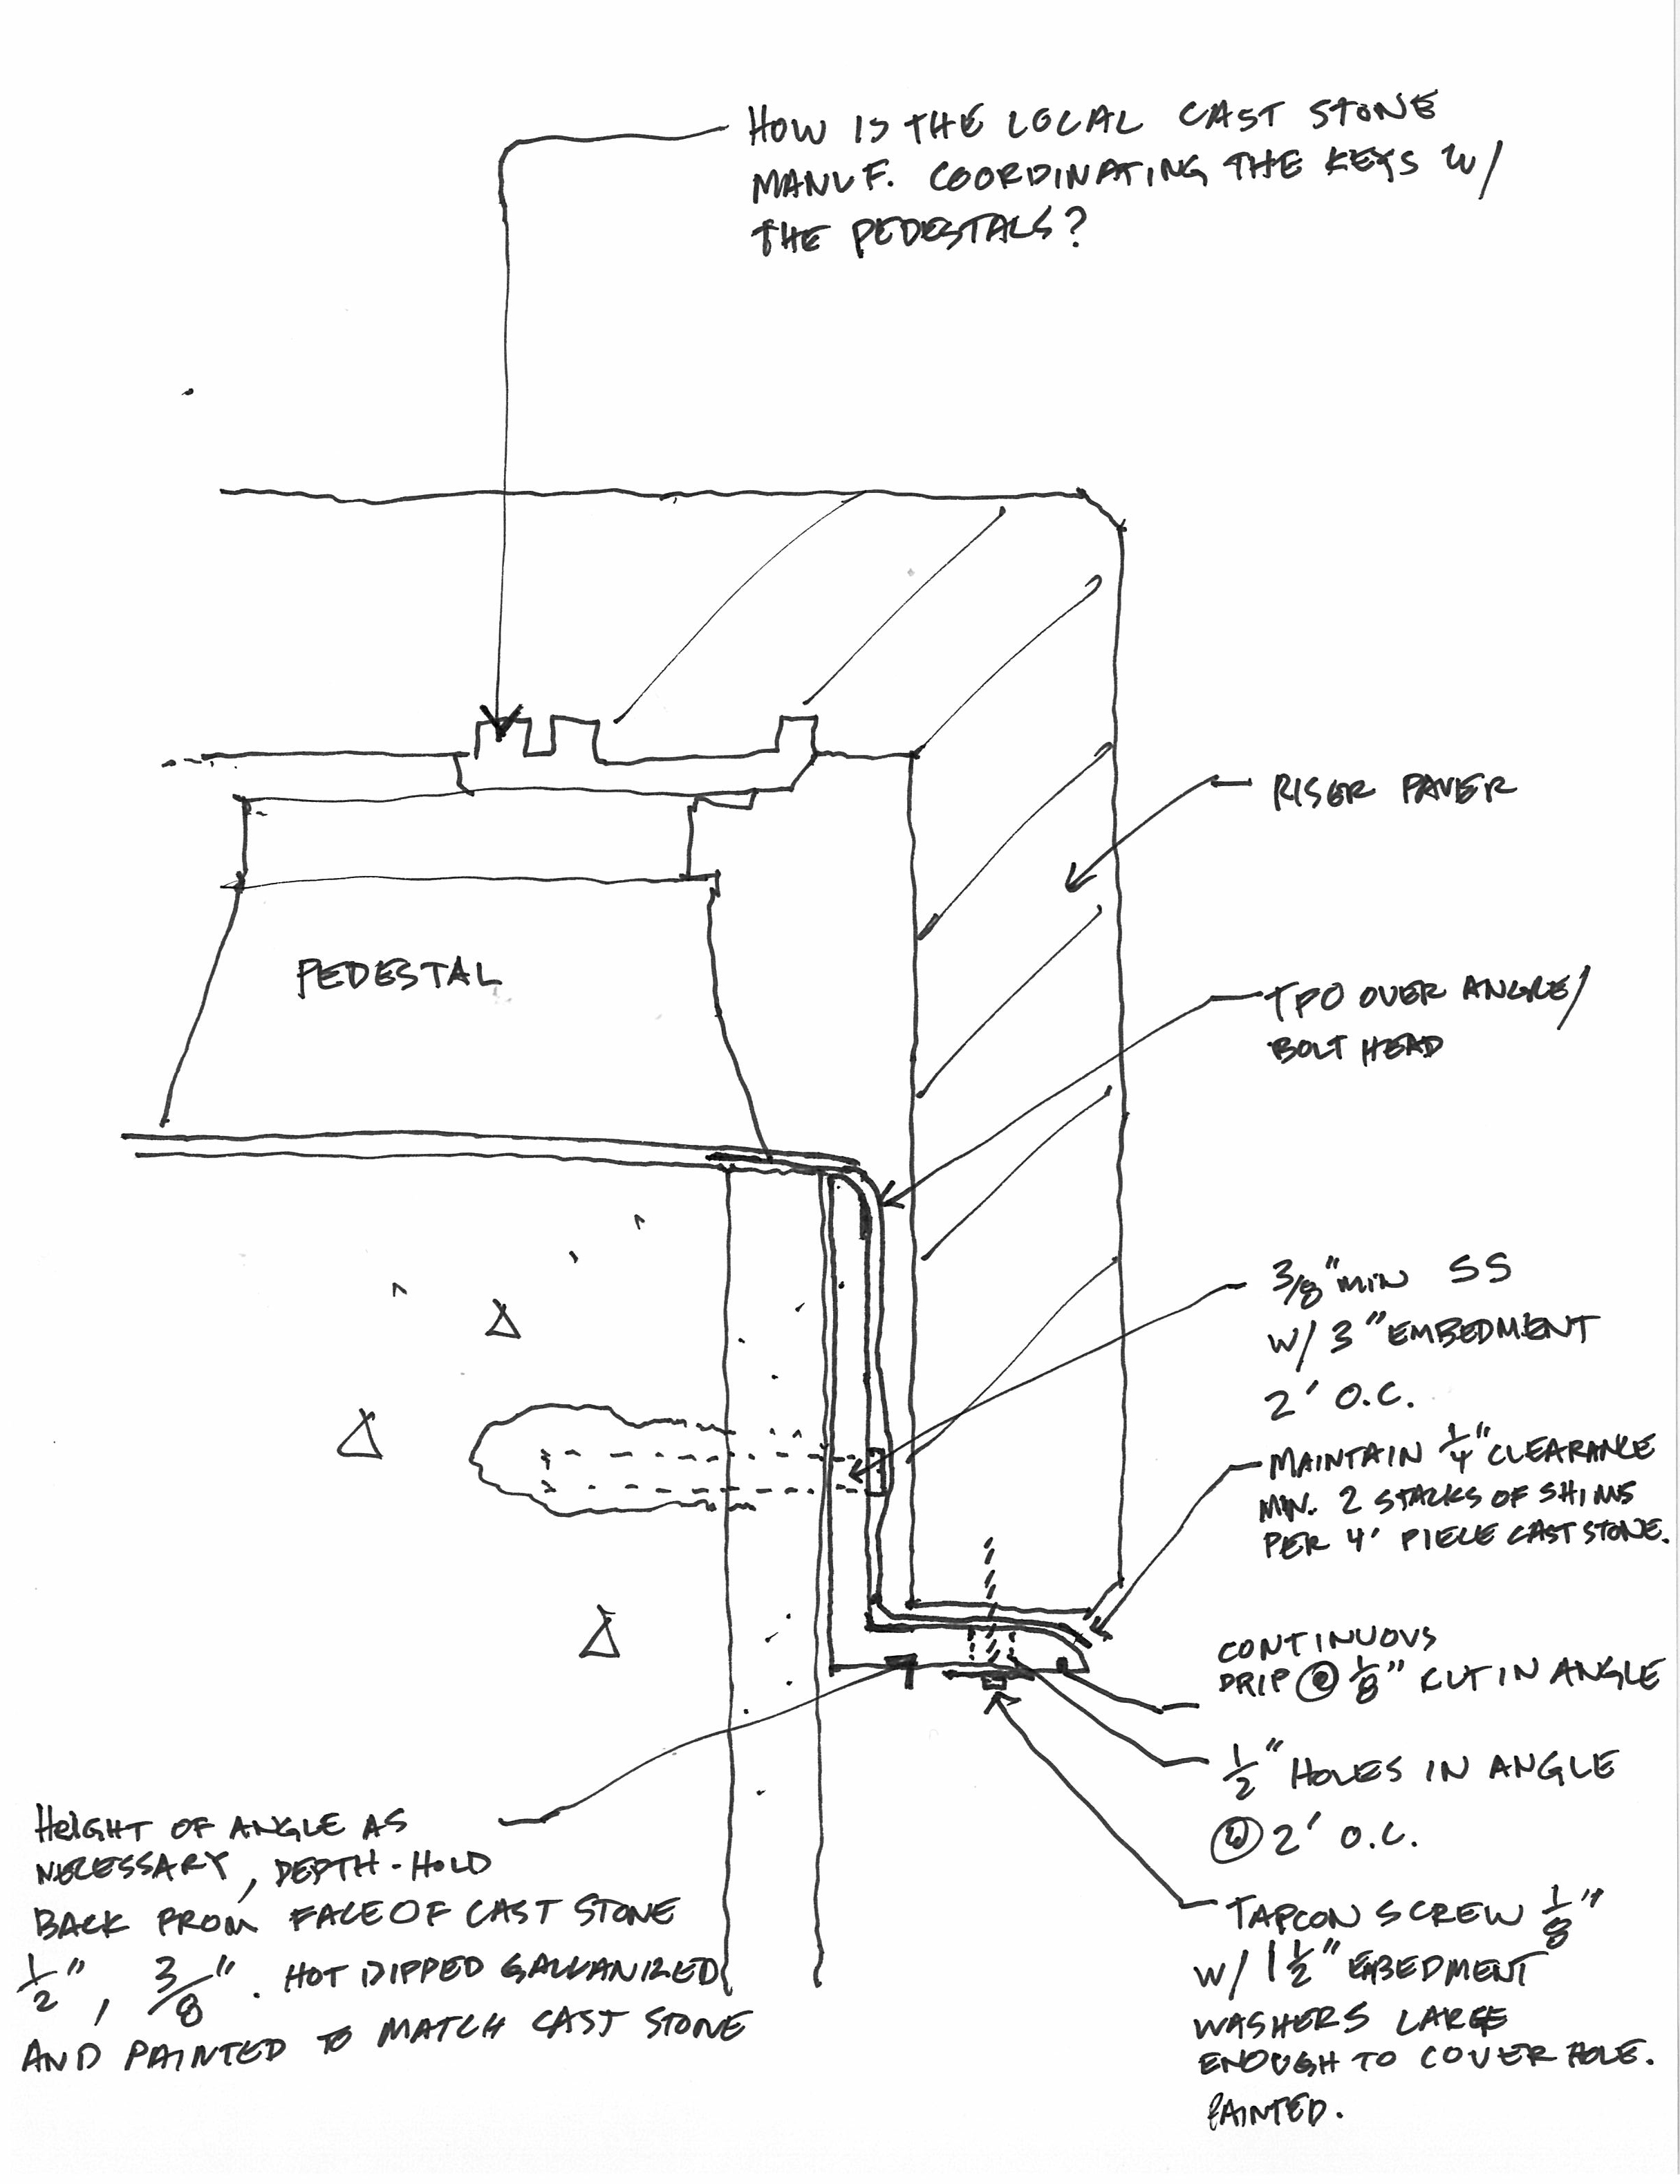 This is a typical sketch done during construction to clarify construction documents.